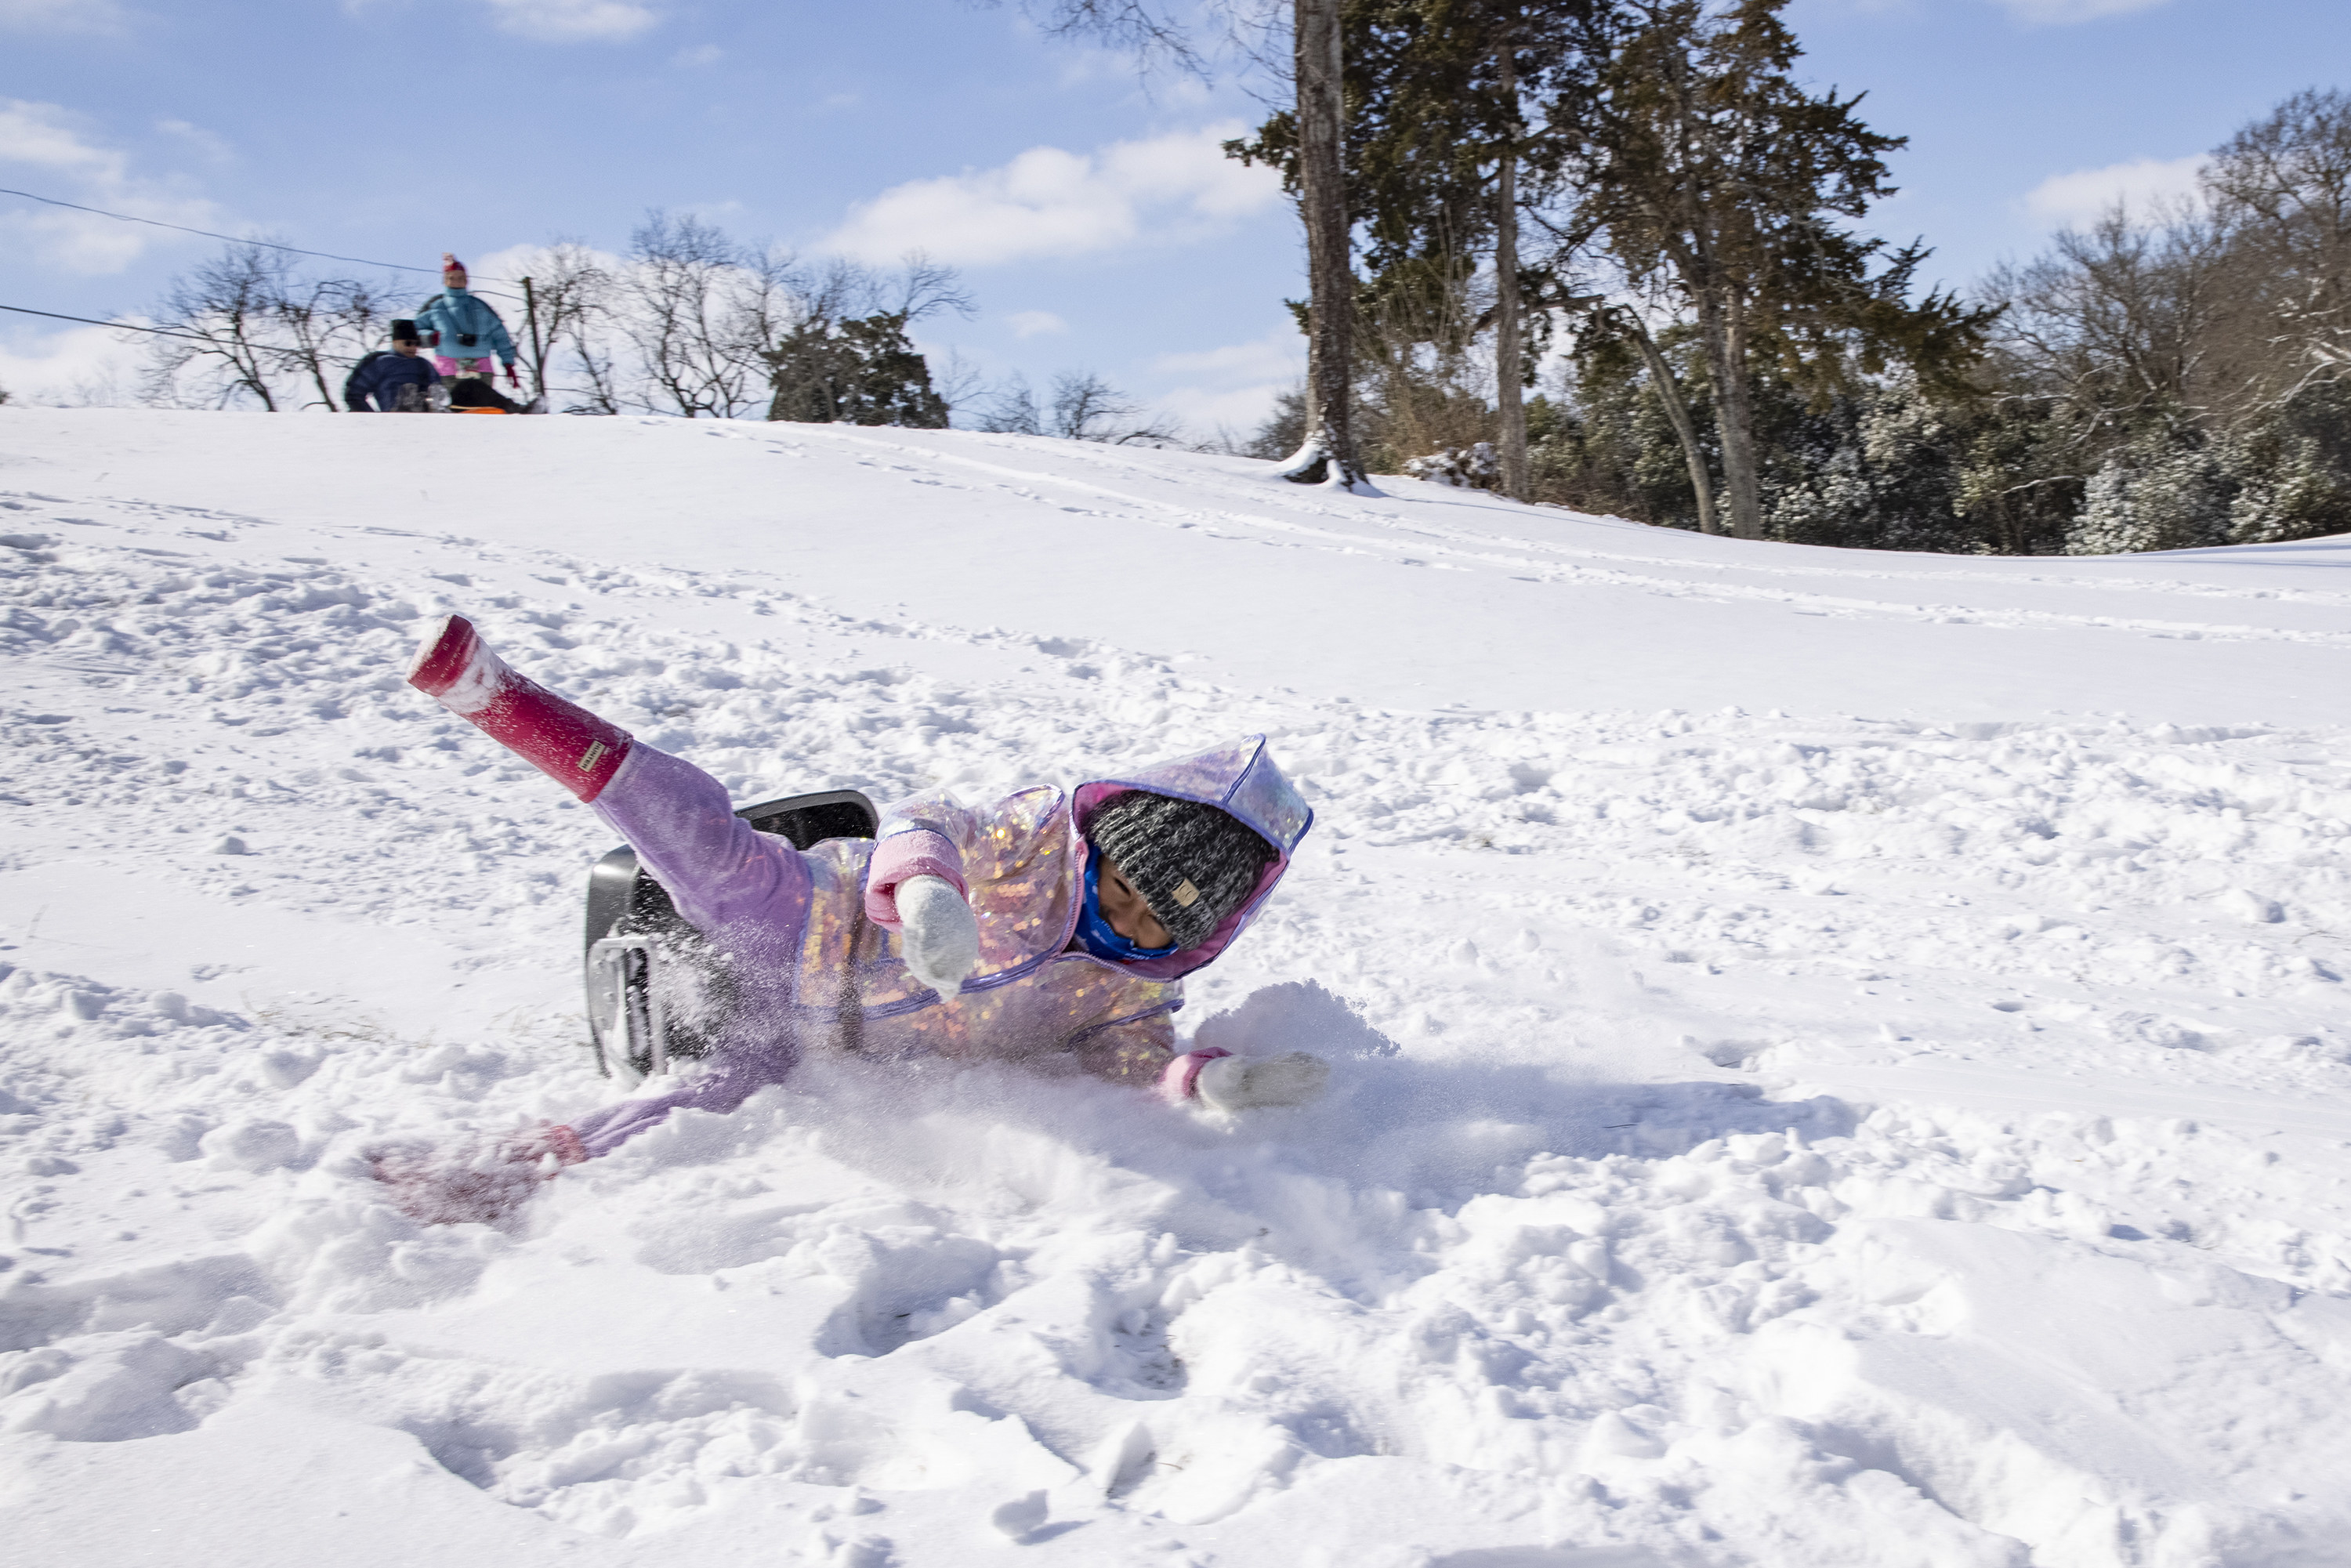 A young girl sledding down a hill